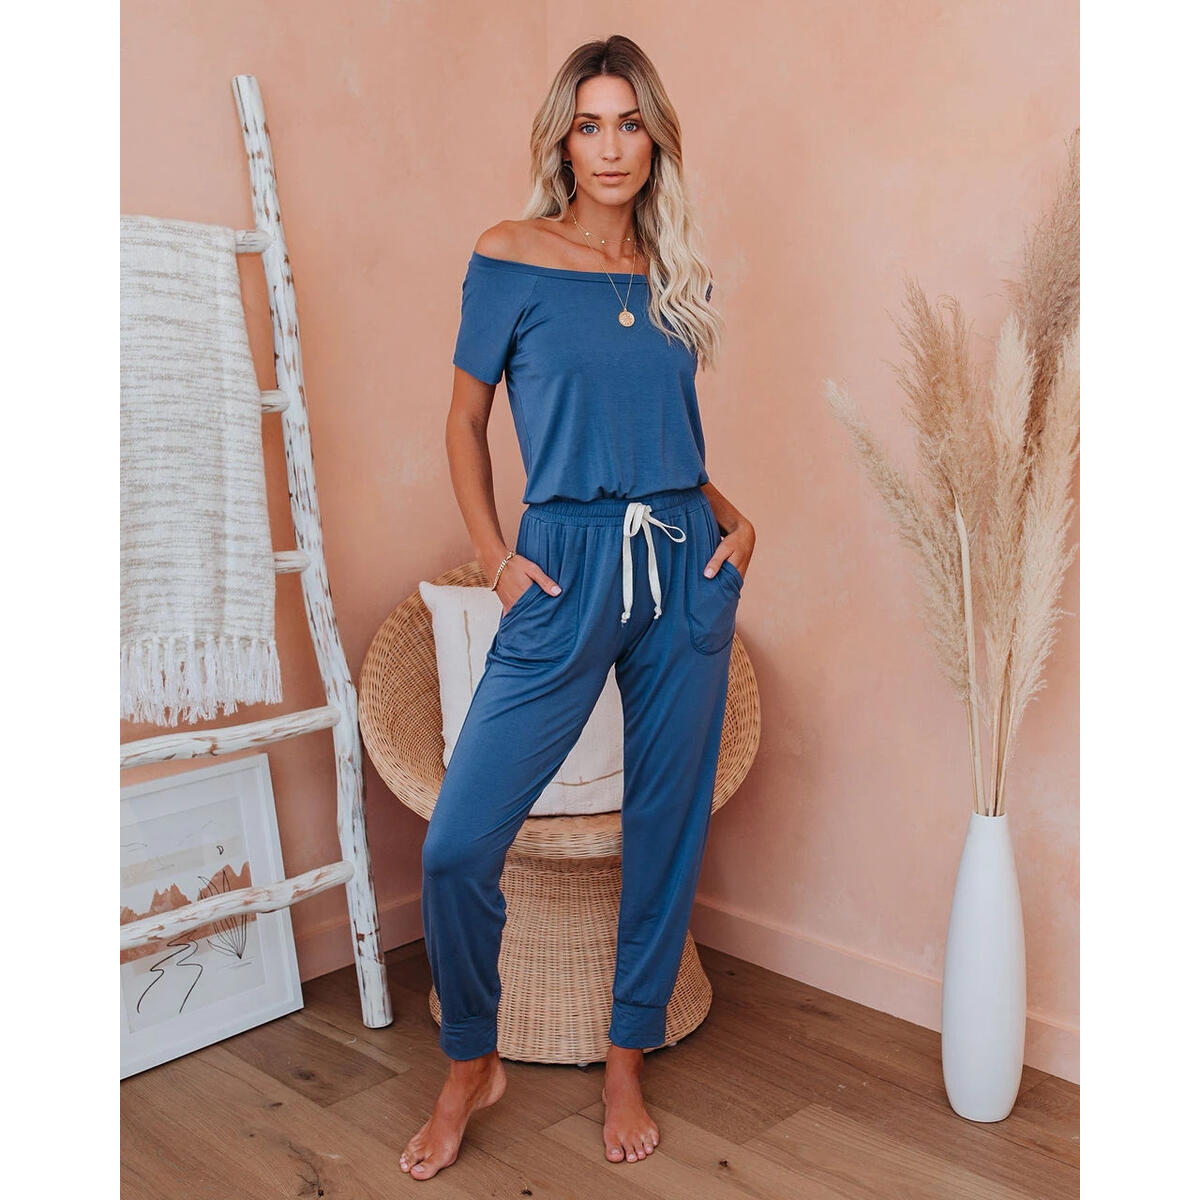 Women's Loose Fit Off Shoulder Elastic Waist Beam Foot Jumpsuit Rompers with Pockets Blue